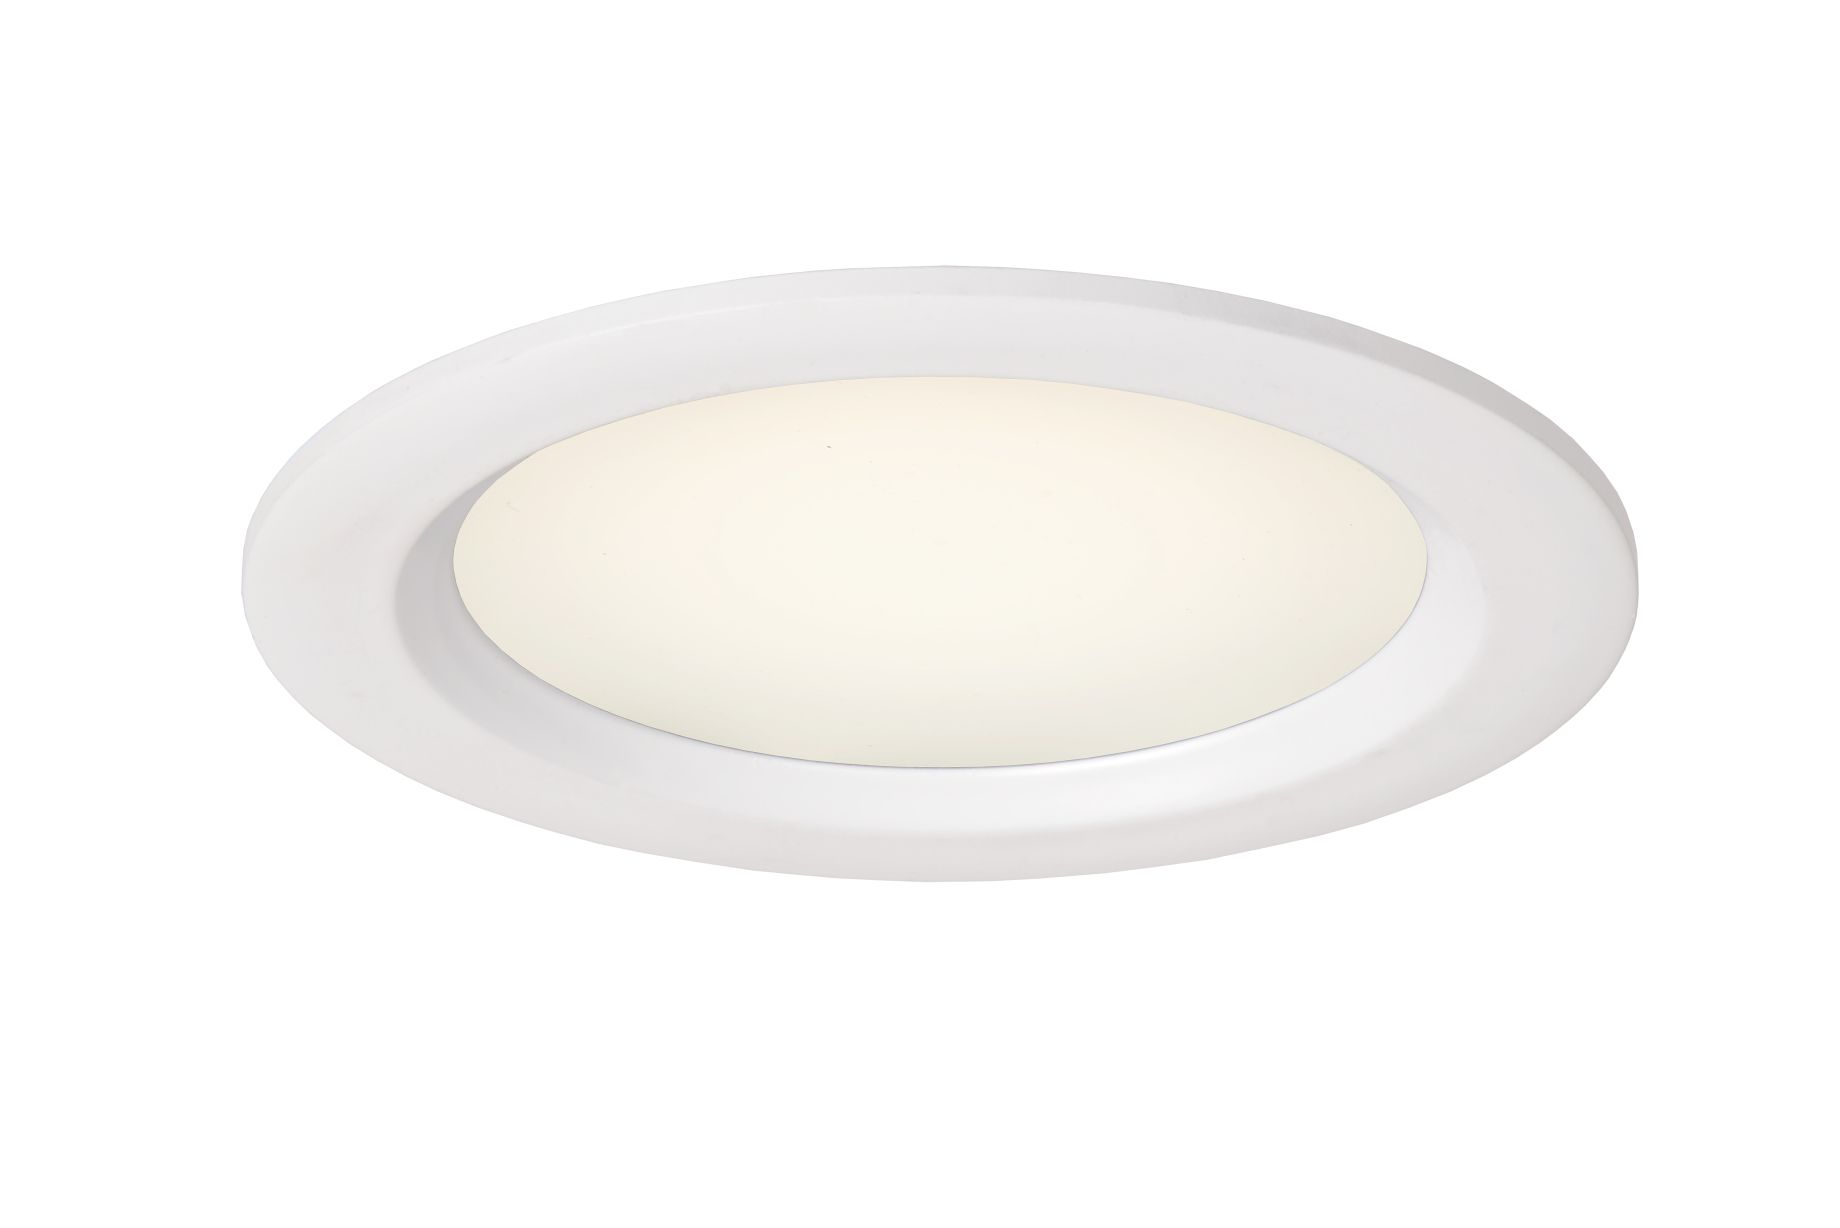 Led Spots Feuchtraum Led Spot Ip44 Free Ceiling Downlight Bioledex Dekto Led Spot